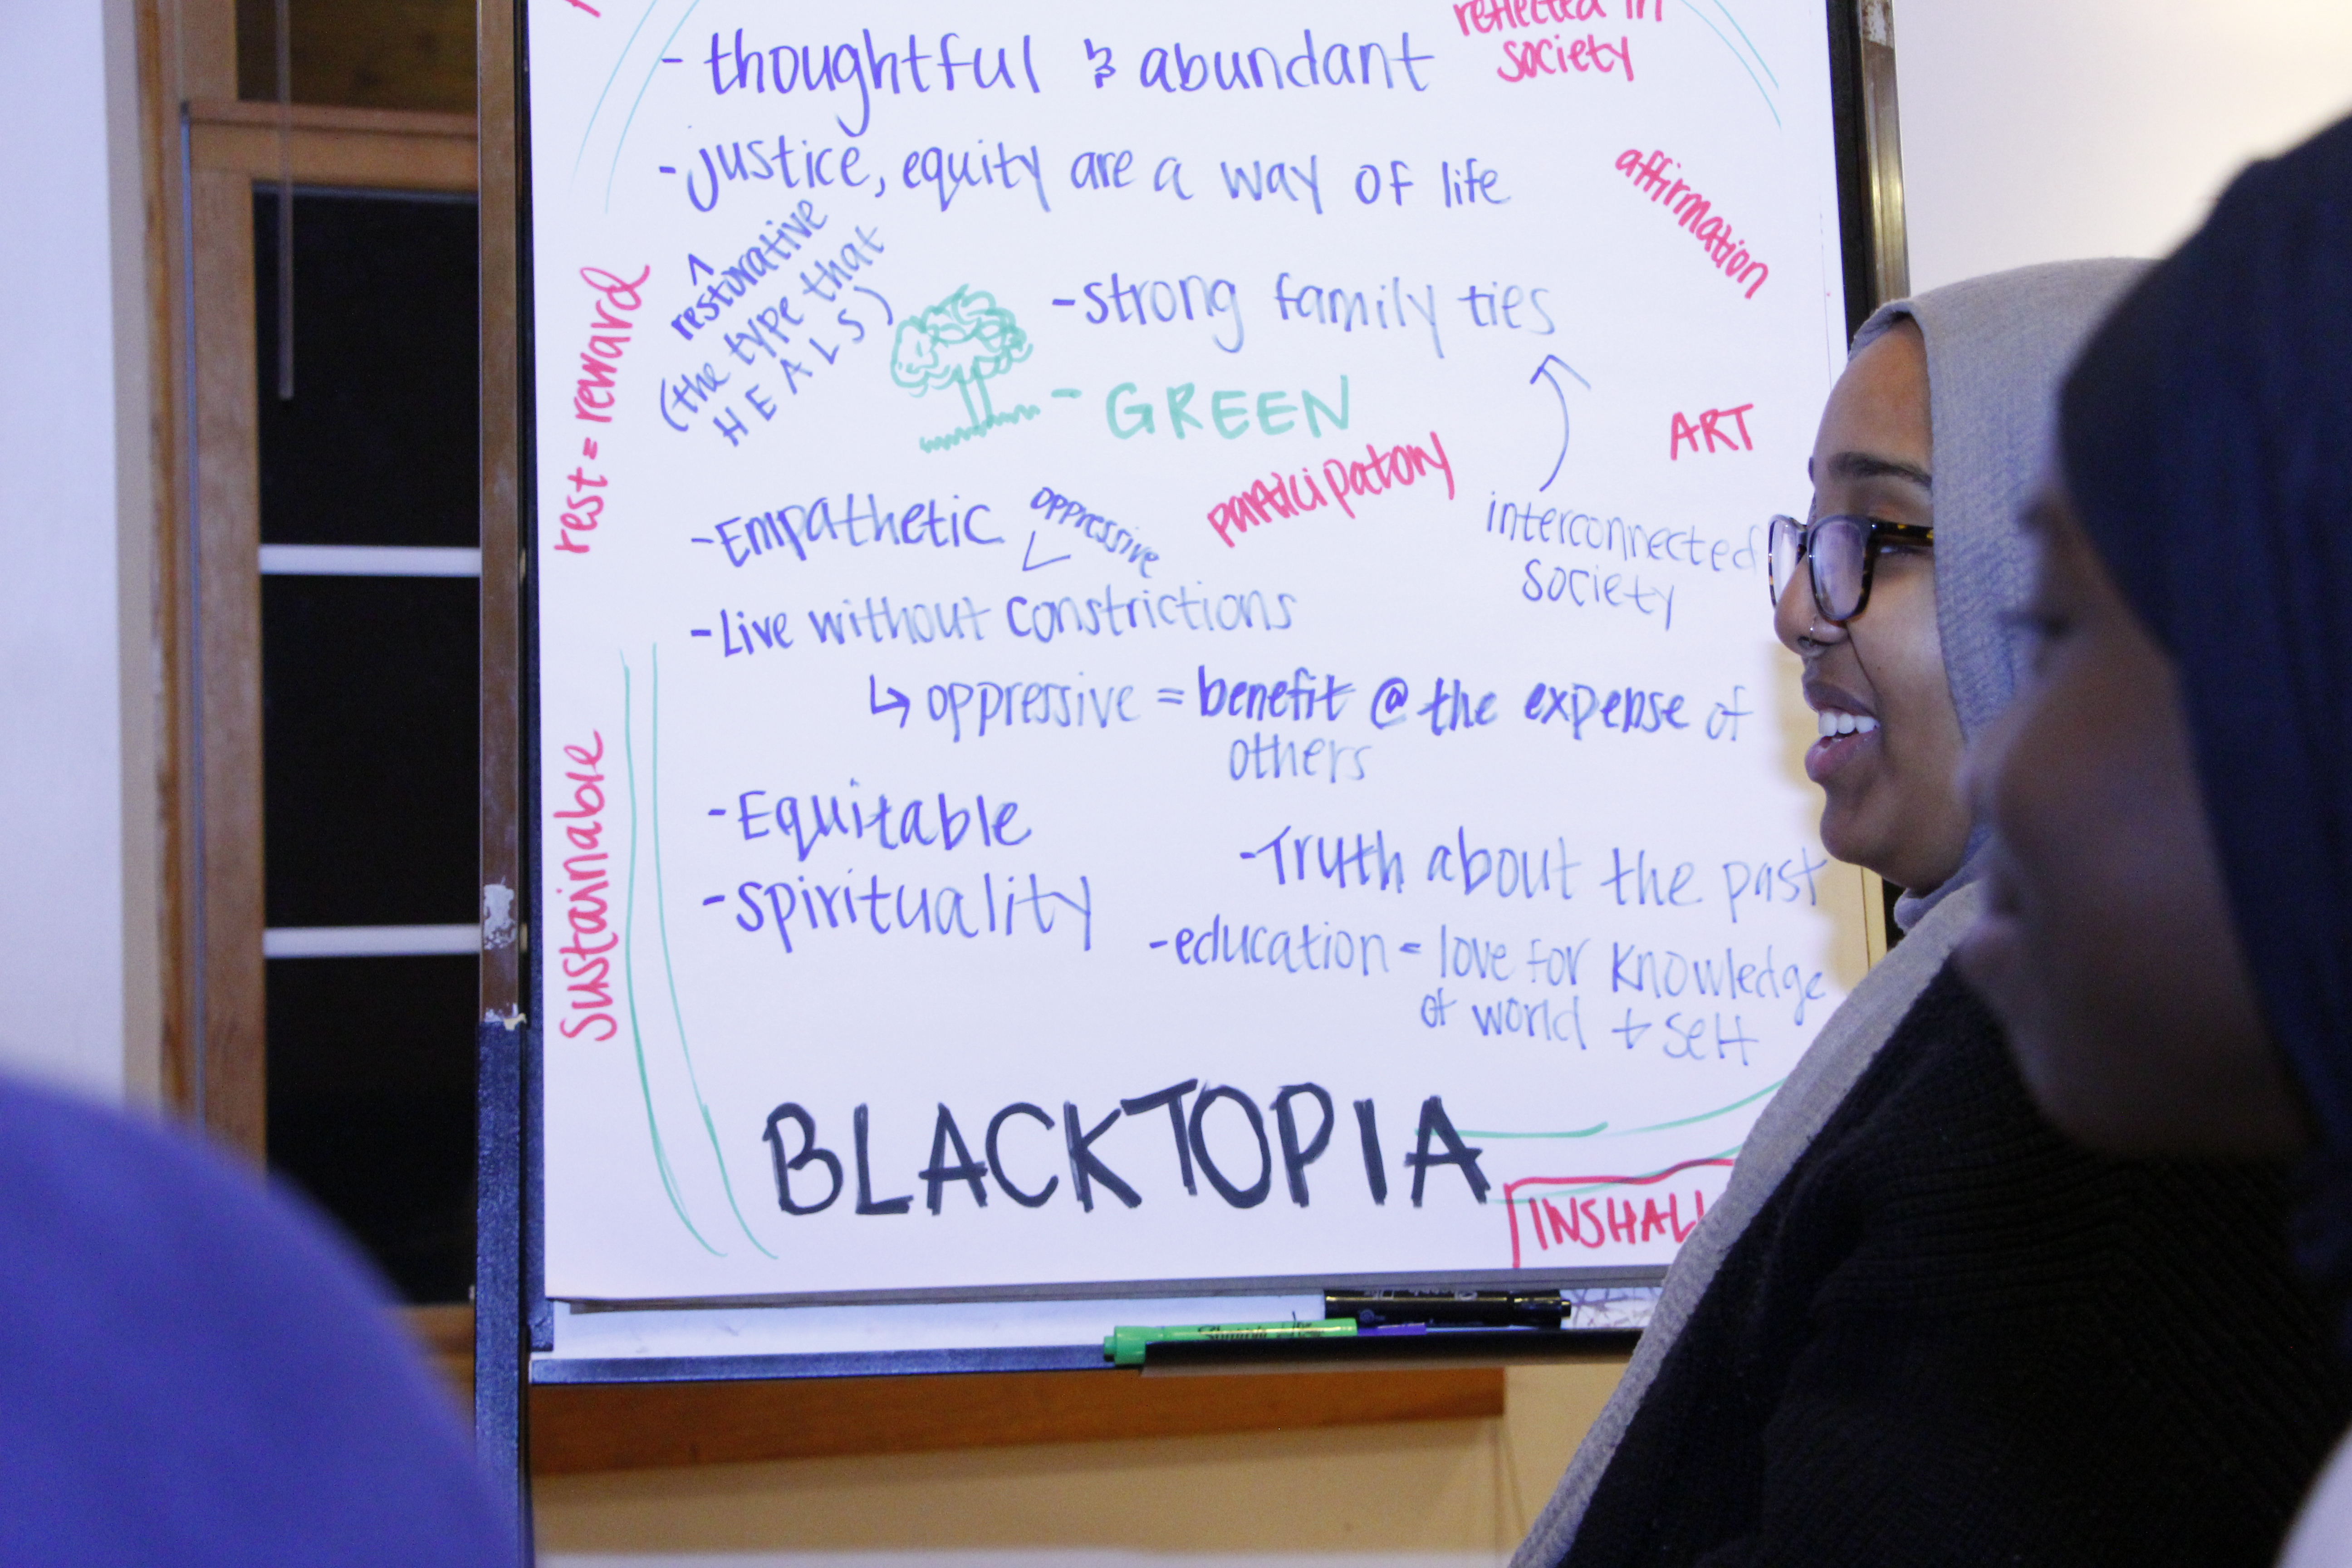 Blacktopia - Vision for our Future